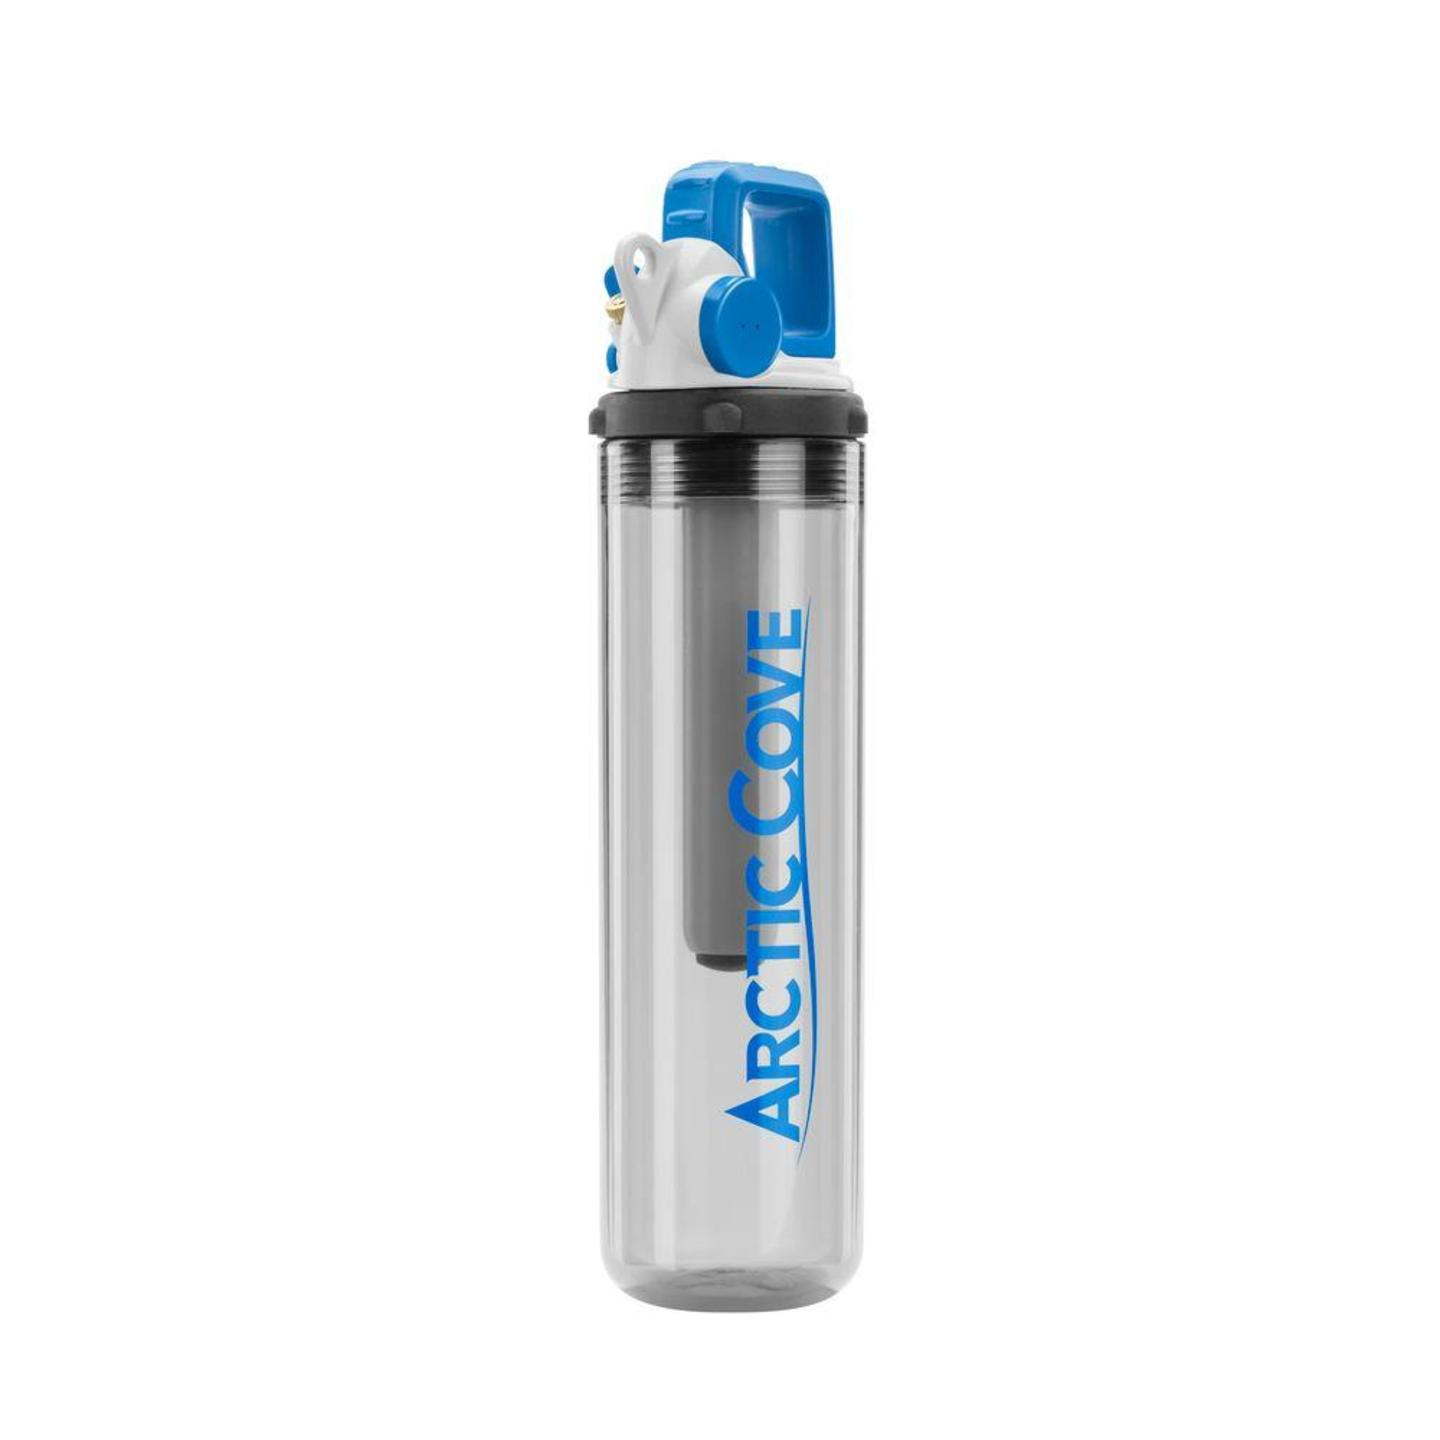 Mist Fan Bottle : Oz personal misting bottle ‹ products arctic cove